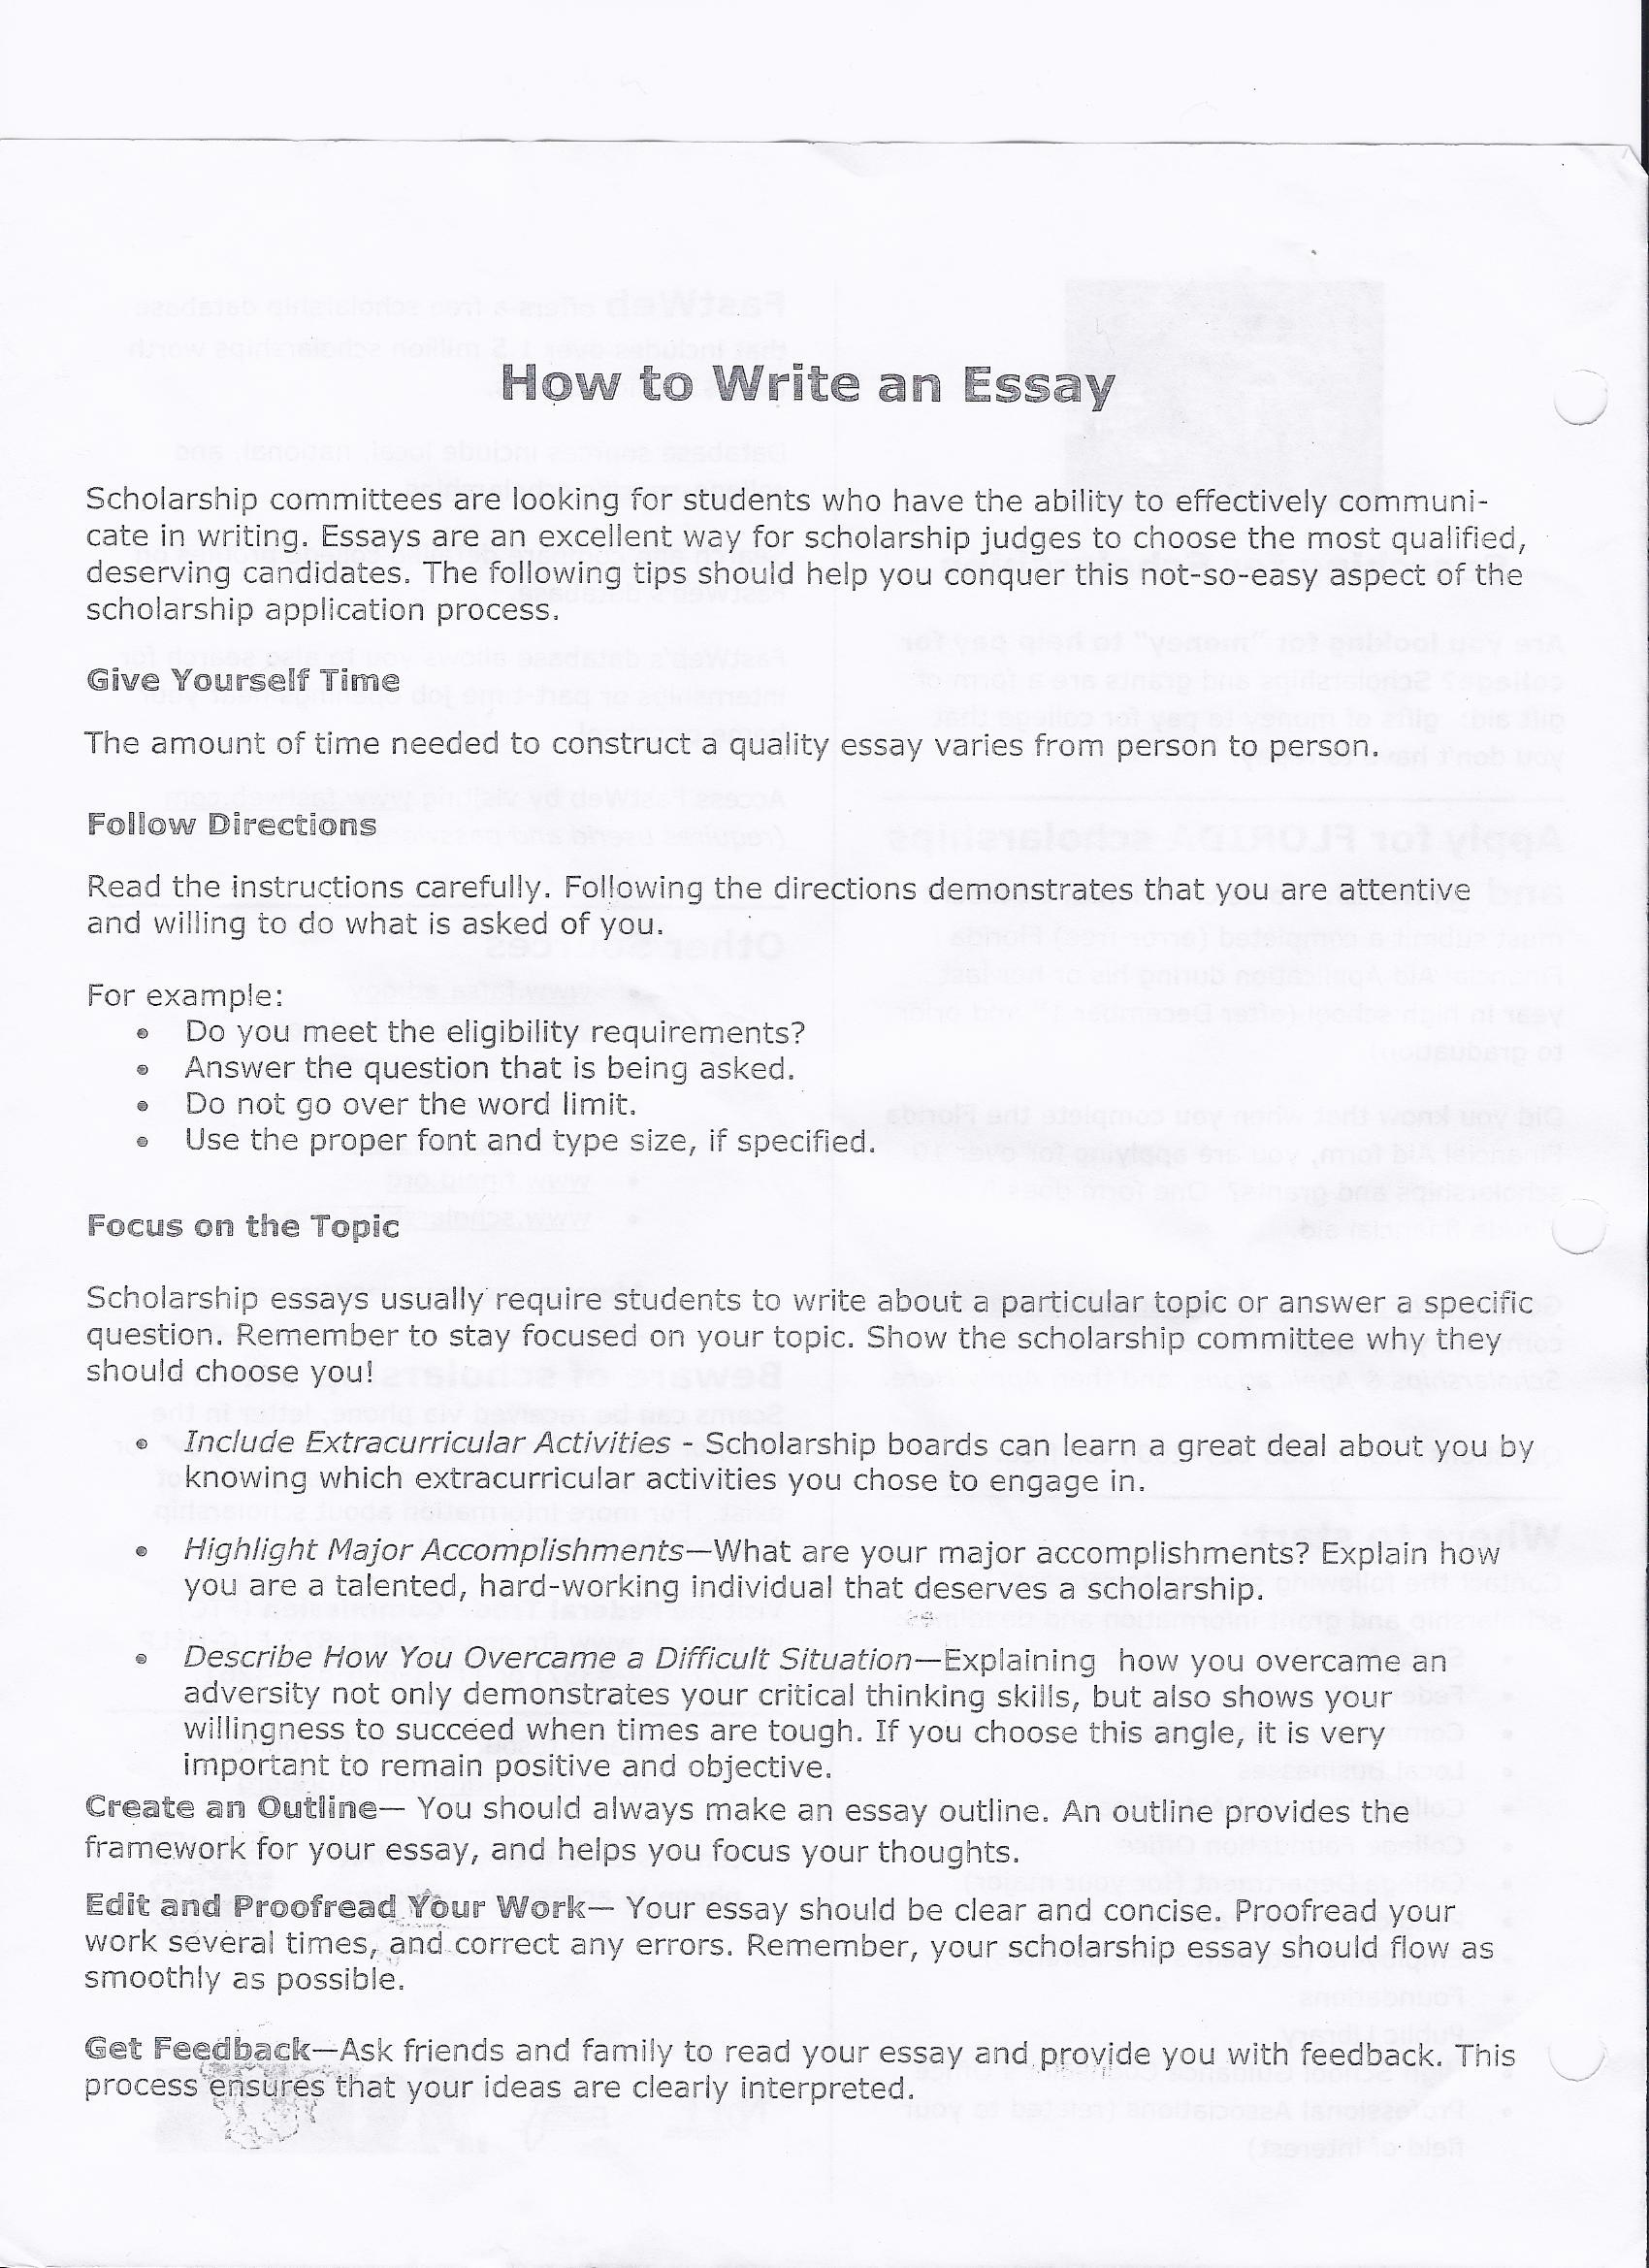 College essay editing service reviews